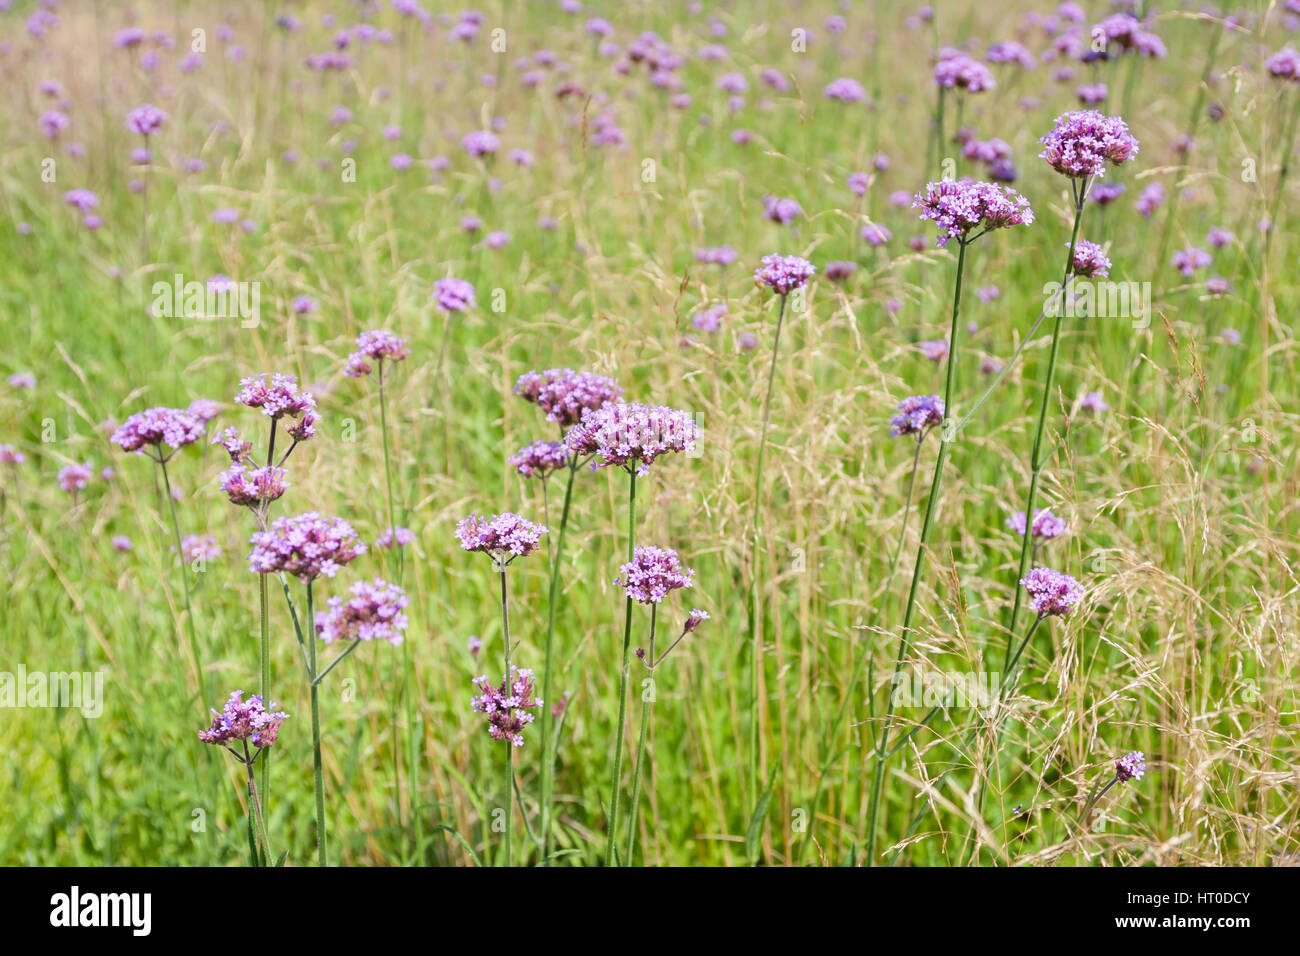 Tall Pink Verbena Growing In A Field Of Ornamental Grass Stock Photo